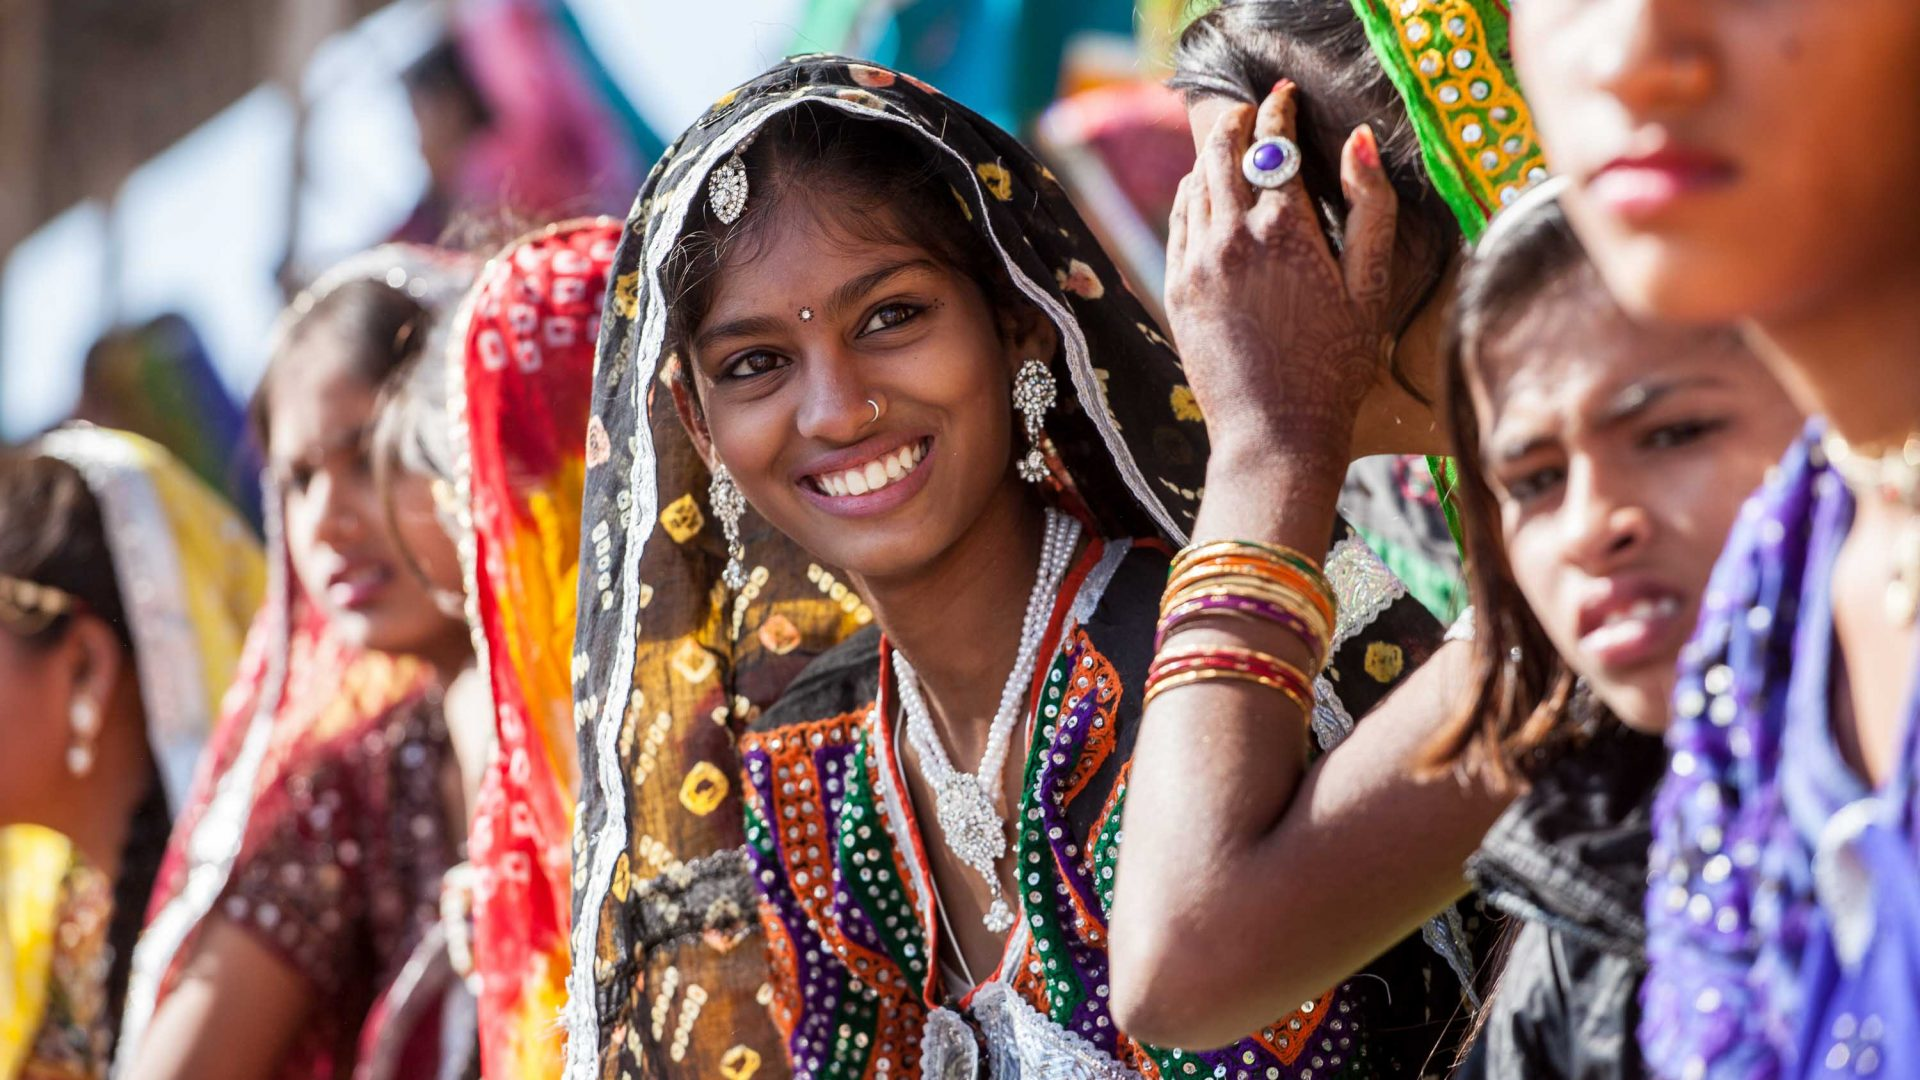 A girl at a beauty contest smiles during the cultural programme of Pushkar Camel Fair.